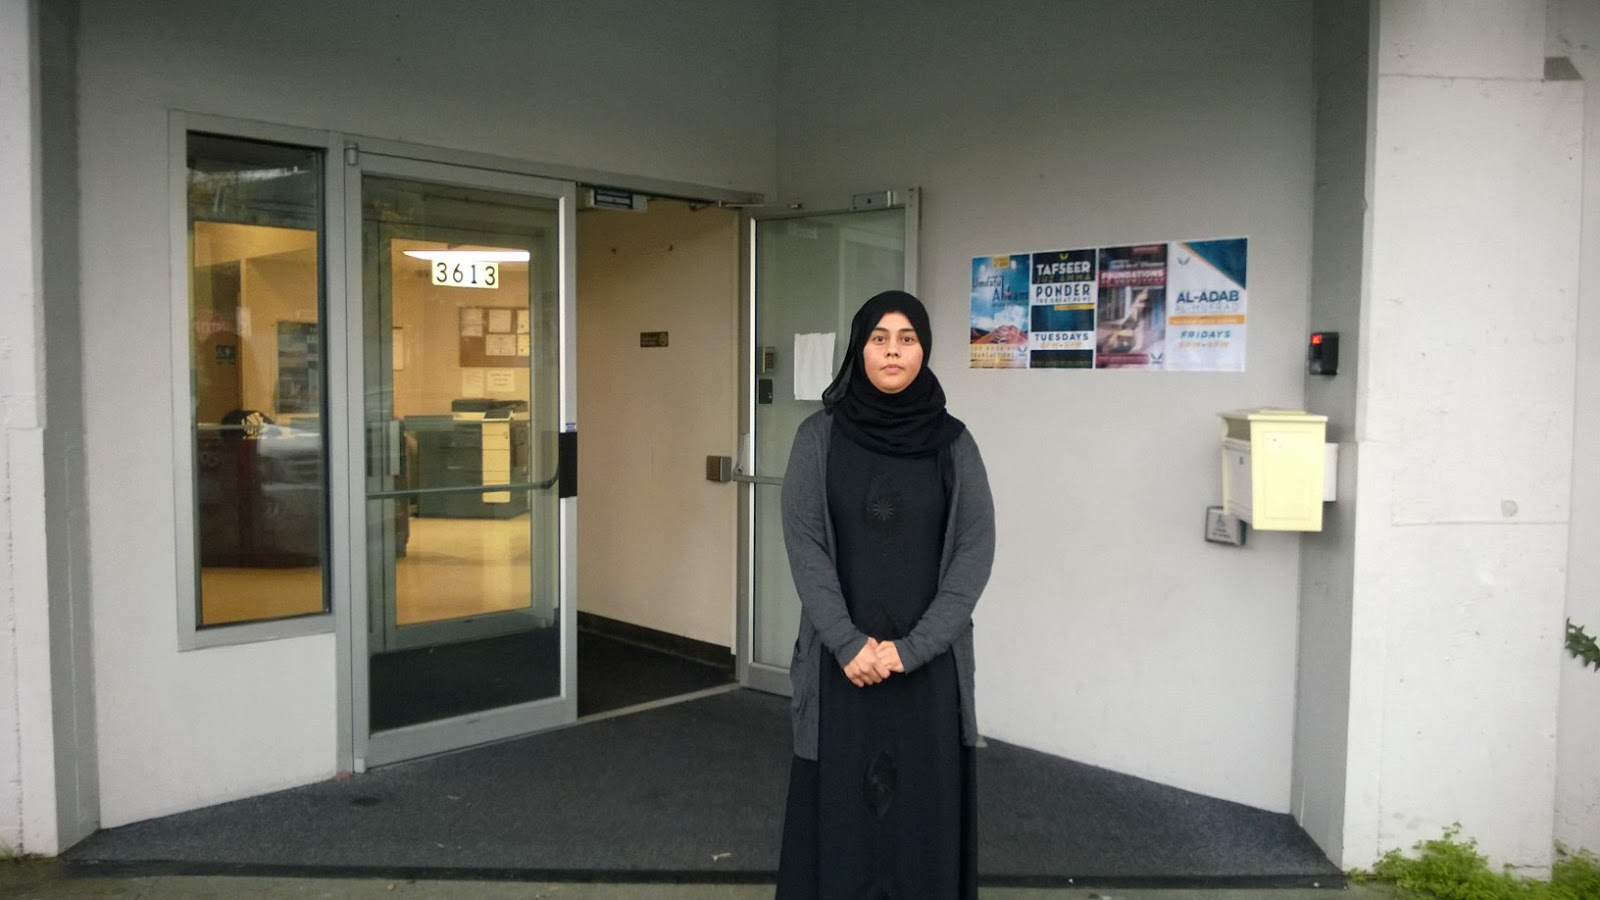 Aishah Bomani standing in front of Makkah Islamic School entrance, Nov. 9. (Photo by Danish Mehboob)